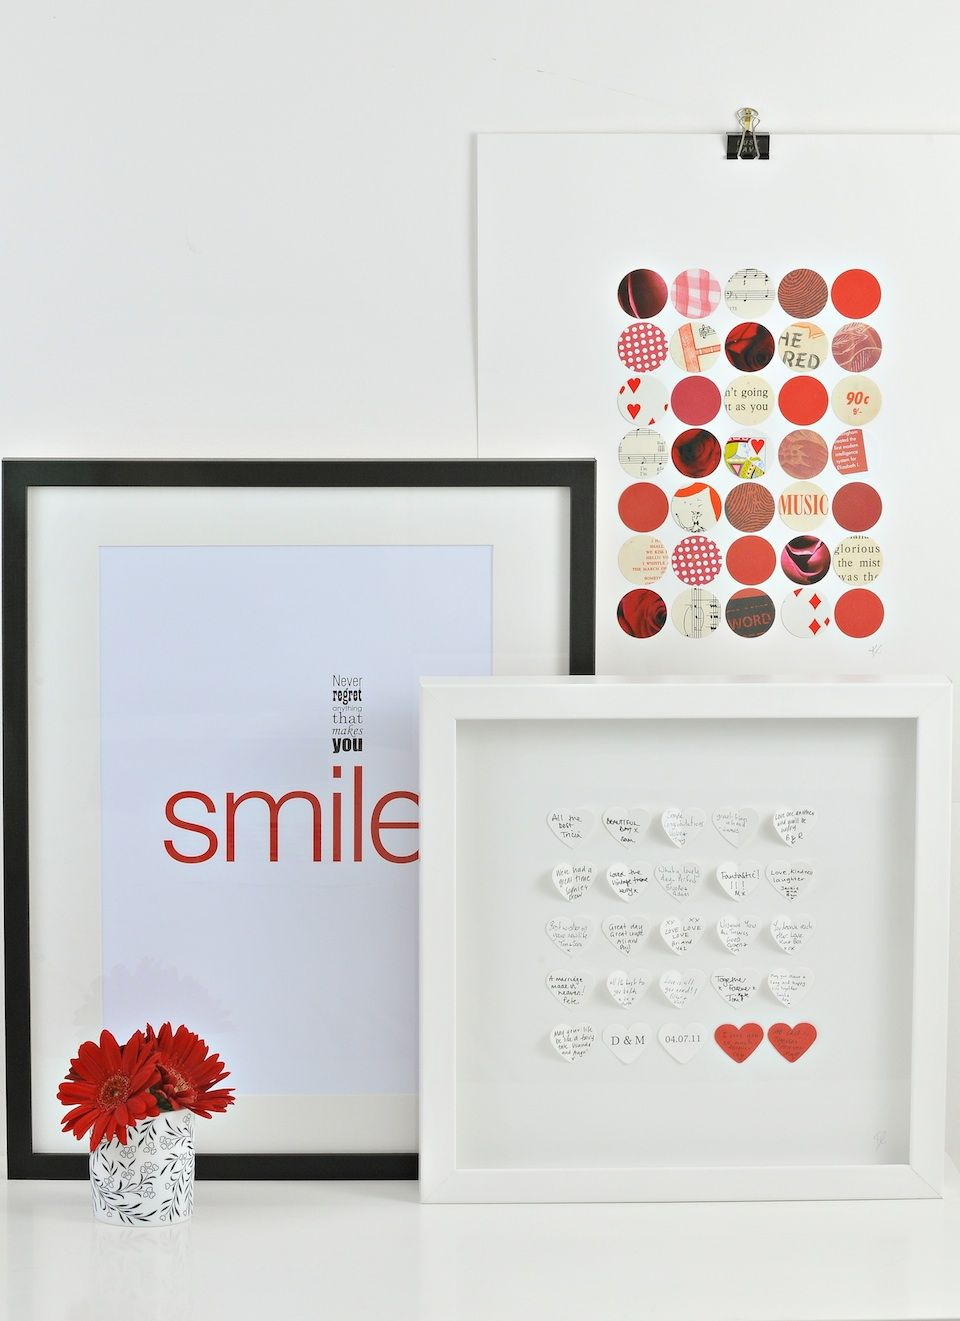 Paper wishes framed guestbook alternative heres how it works we paper wishes framed guestbook alternative heres how it works we send you a paper wishes gift box with a book of paper hearts pen coloured heart for negle Choice Image